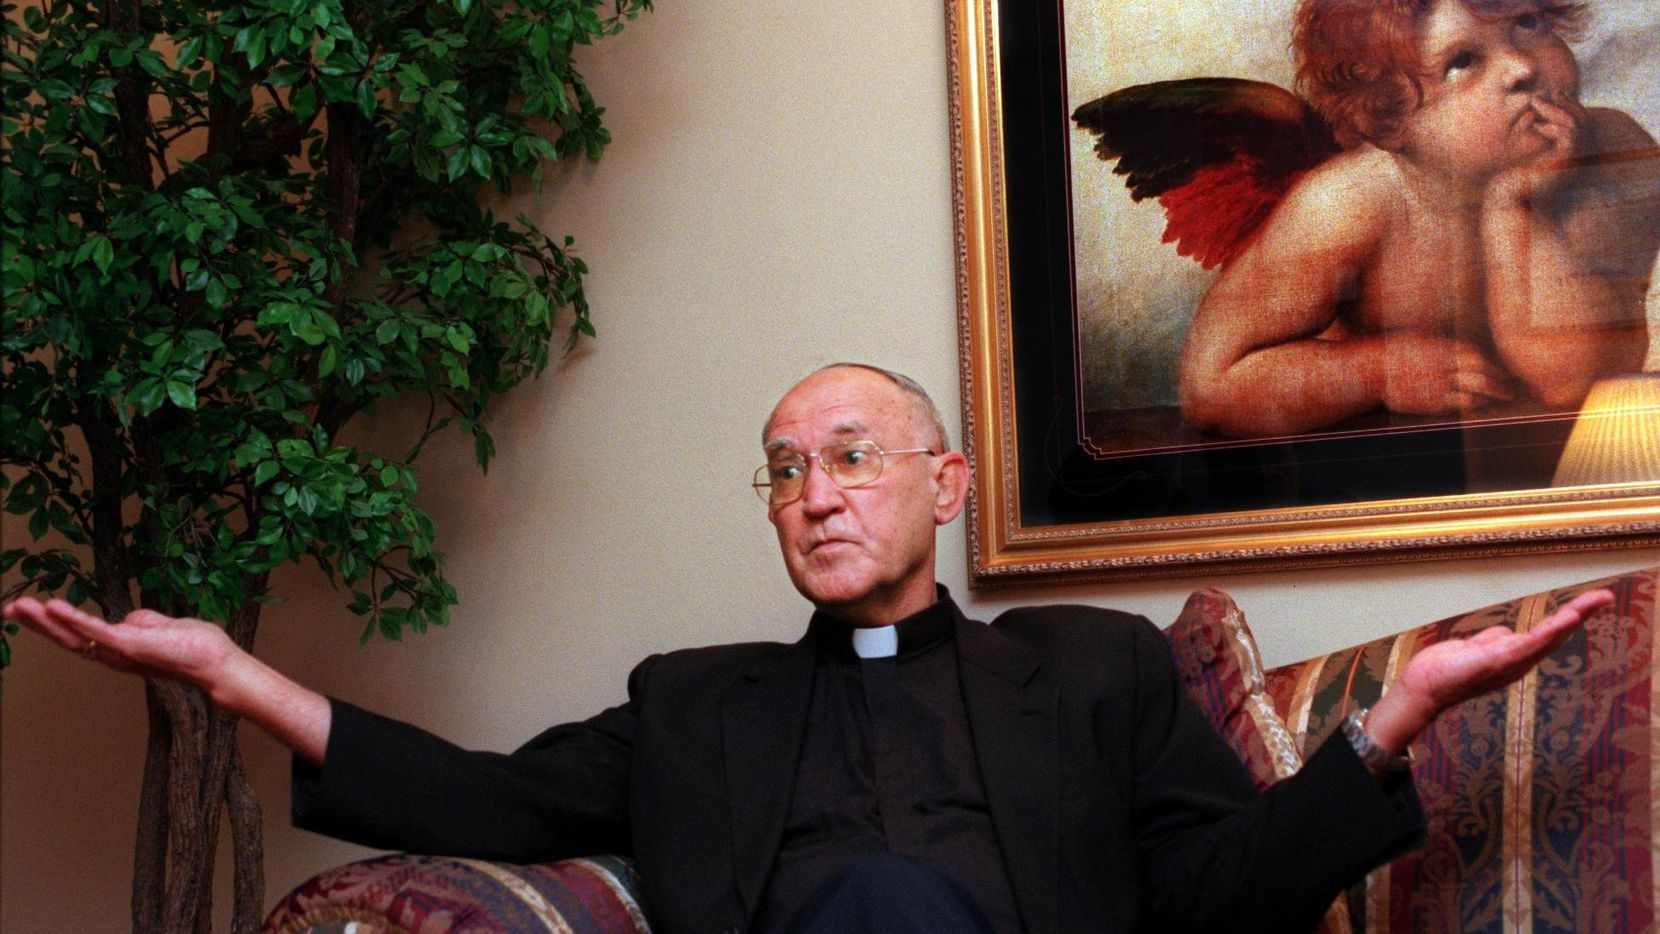 Bishop Charles Grahmann left a legacy in Dallas marked both by spectacular growth and spectacularly embarrassing scandal.